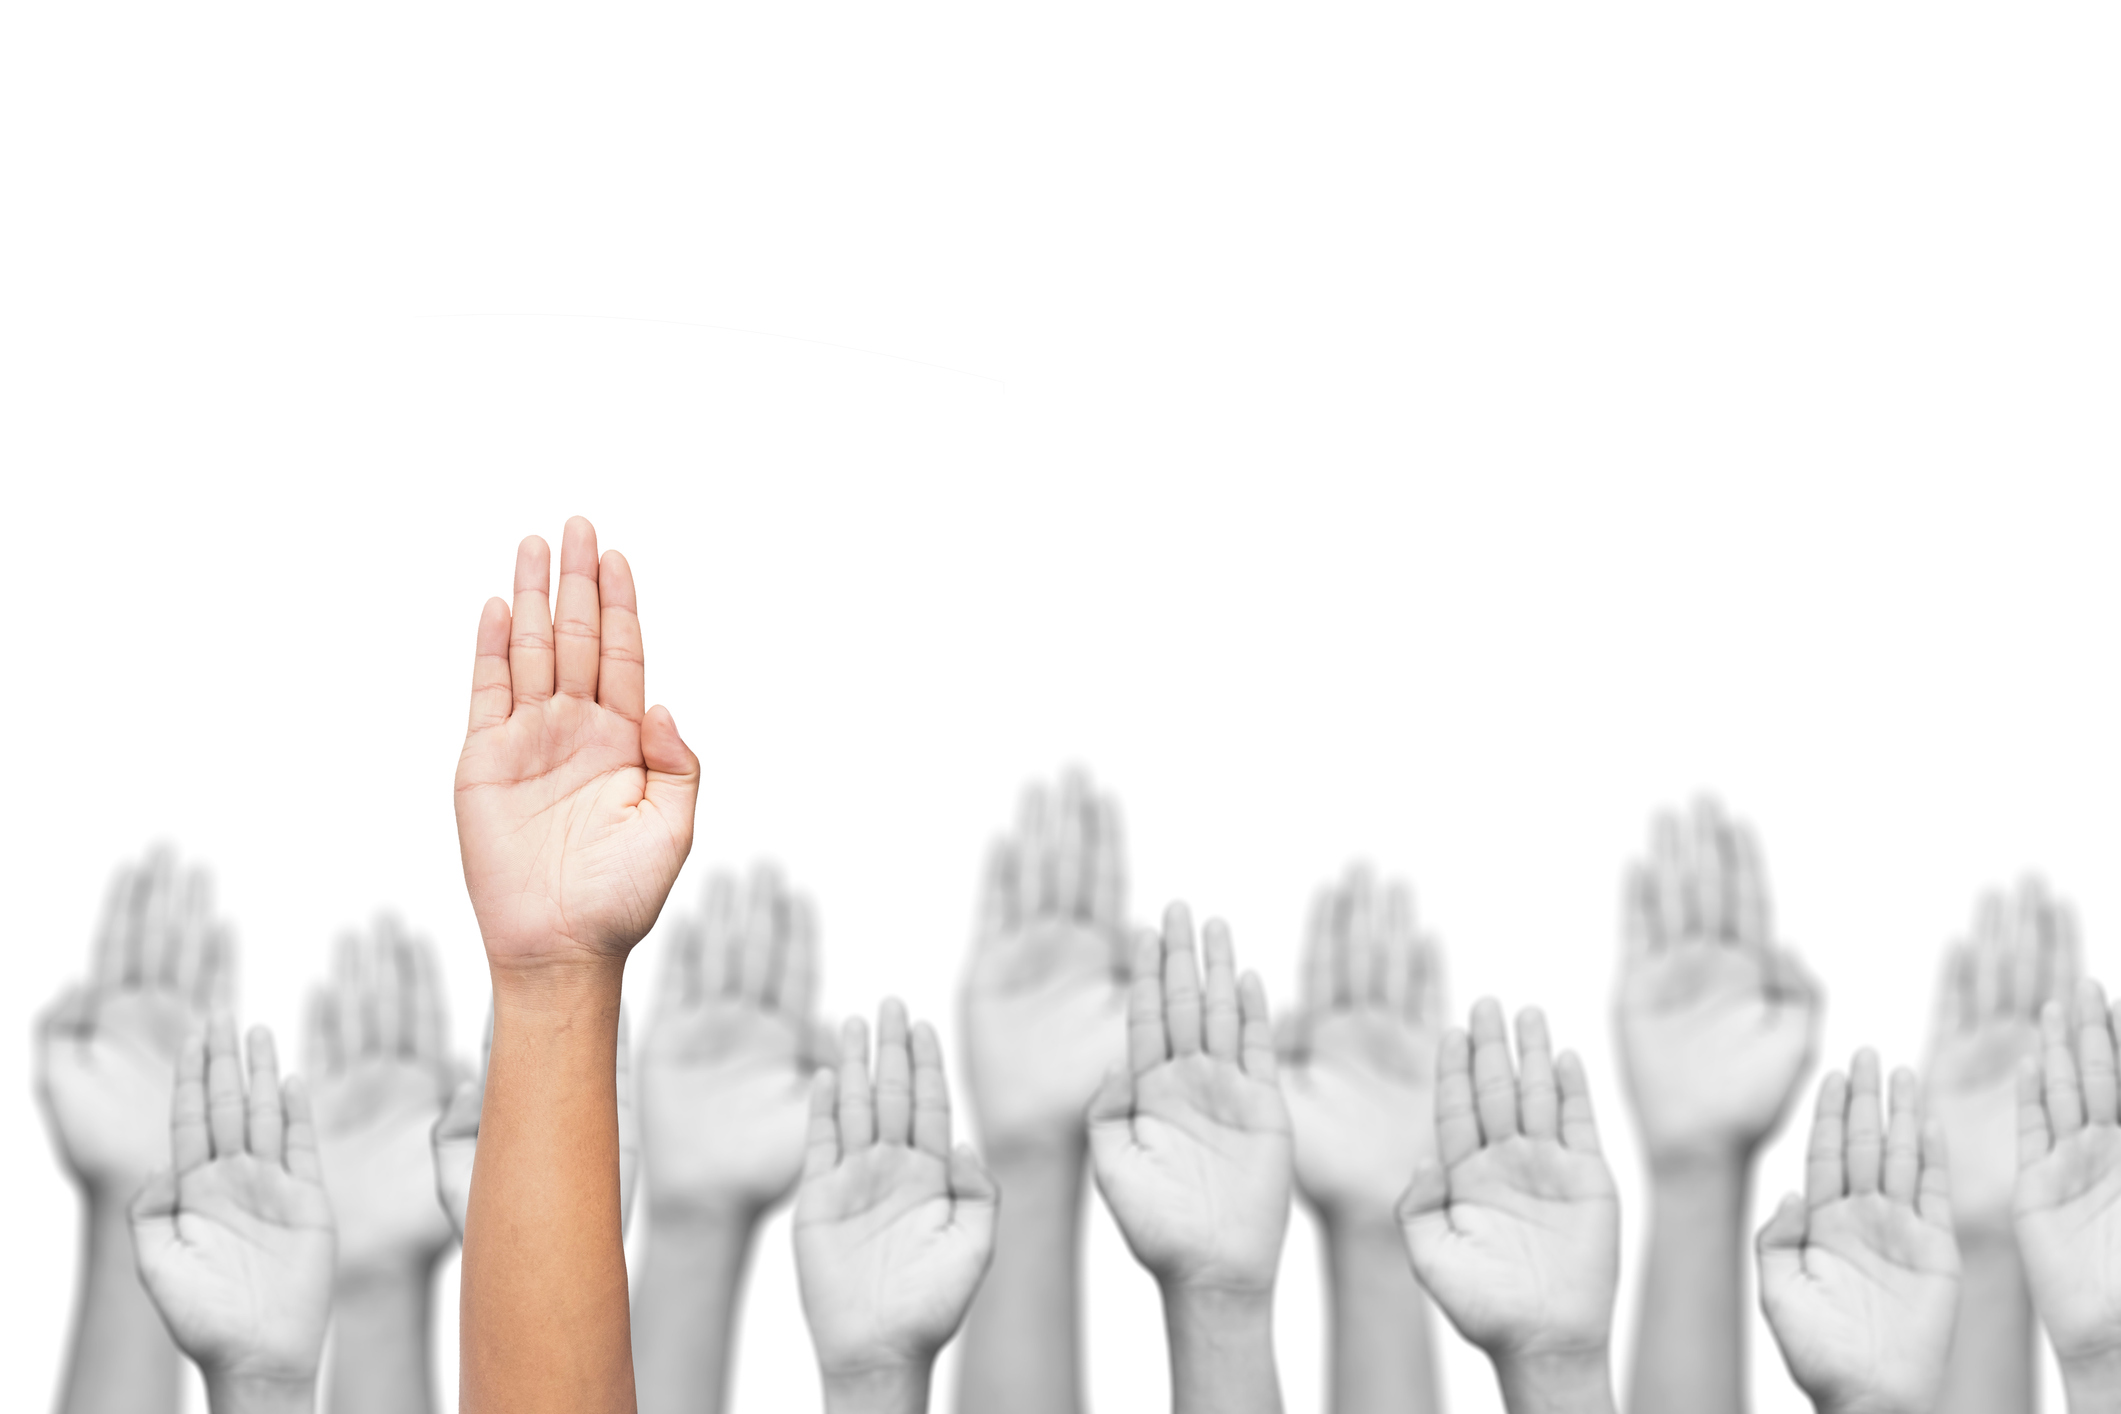 Volunteer With Unspoken Voices Raised Hands Image (Licensed through Getty Images)